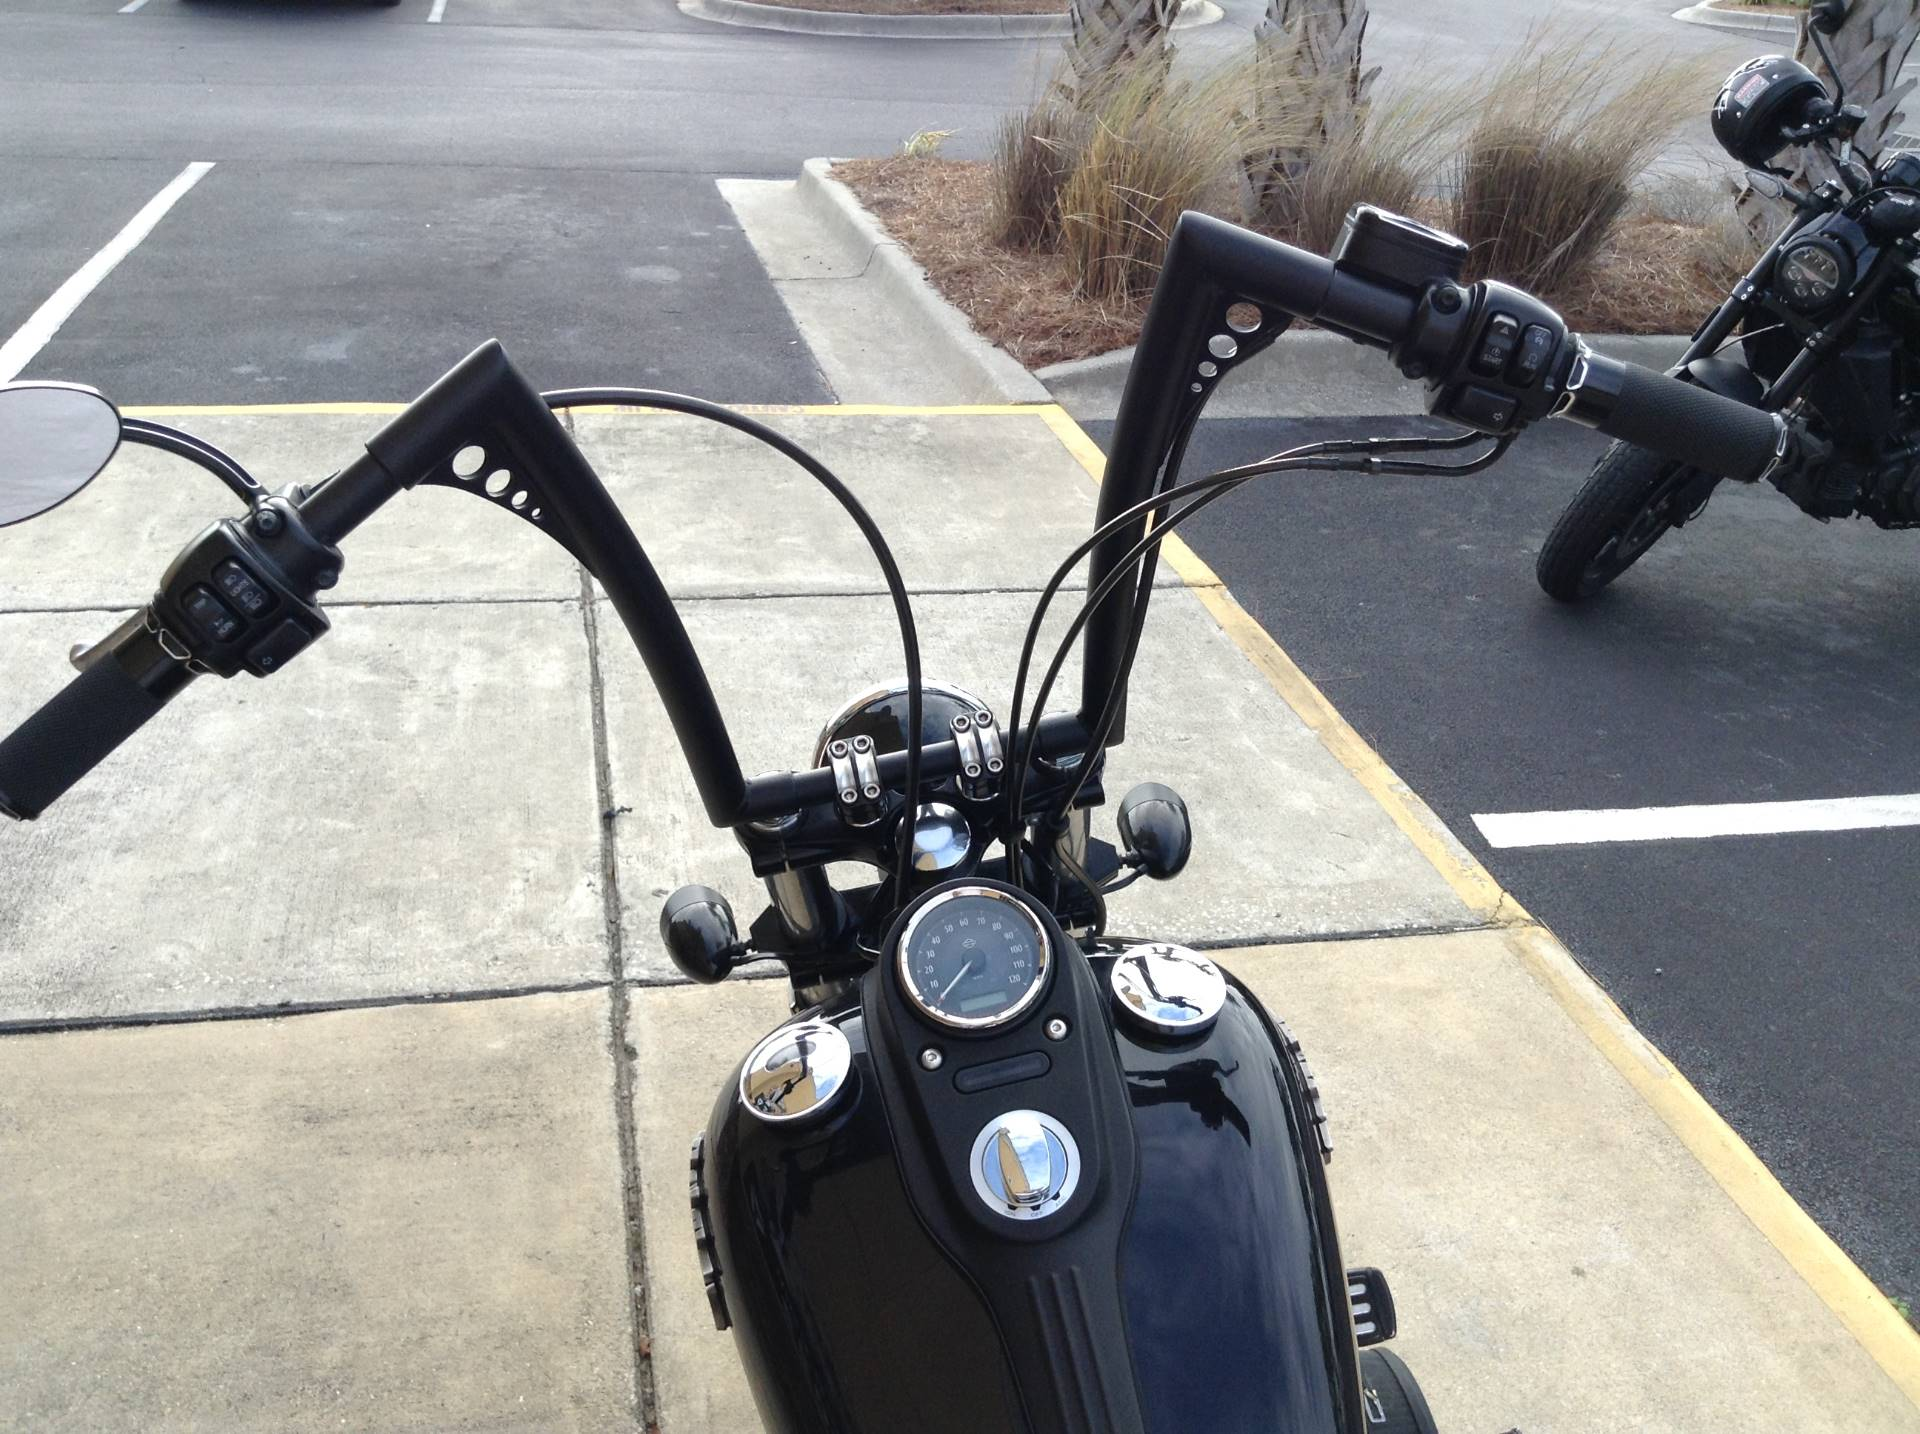 2014 Harley-Davidson STREET BOB in Panama City Beach, Florida - Photo 15